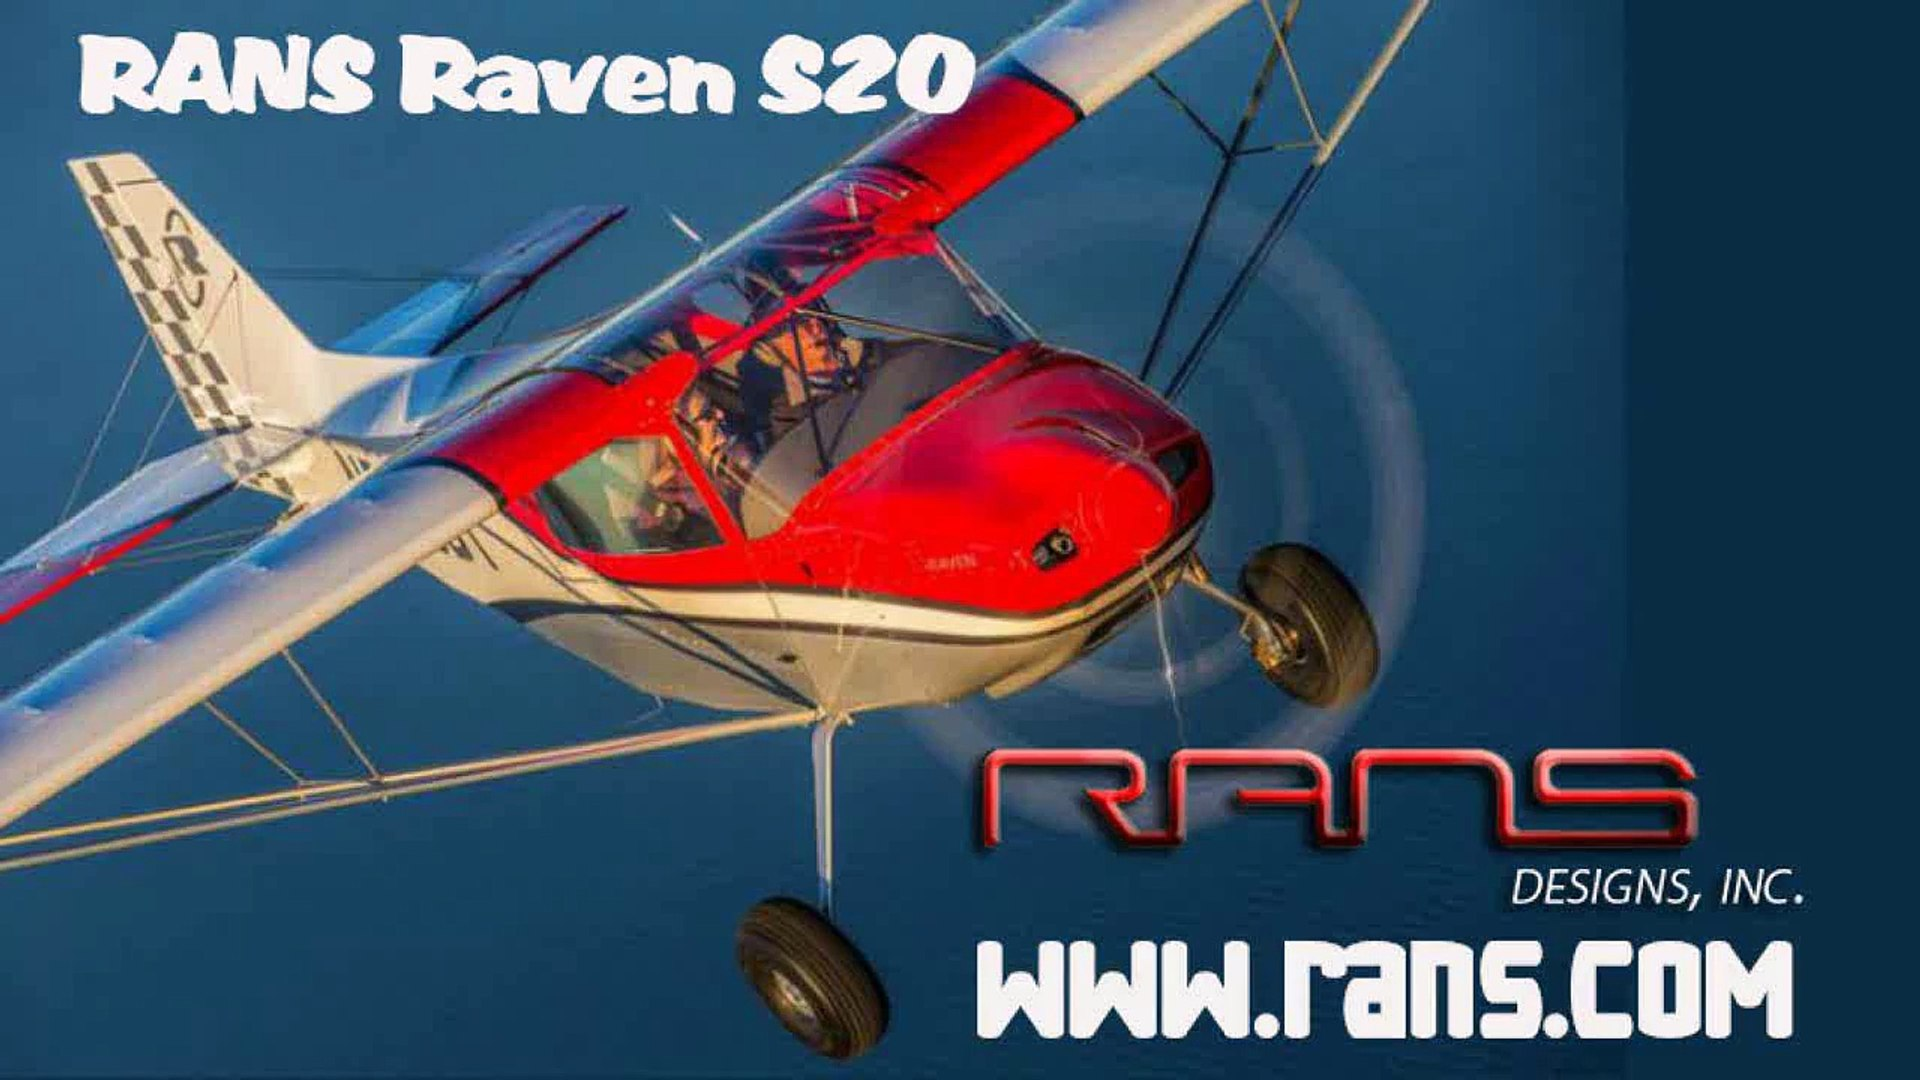 RANS Raven, RANS Aircraft's S20 Raven Aircraft Review by James Lawrence